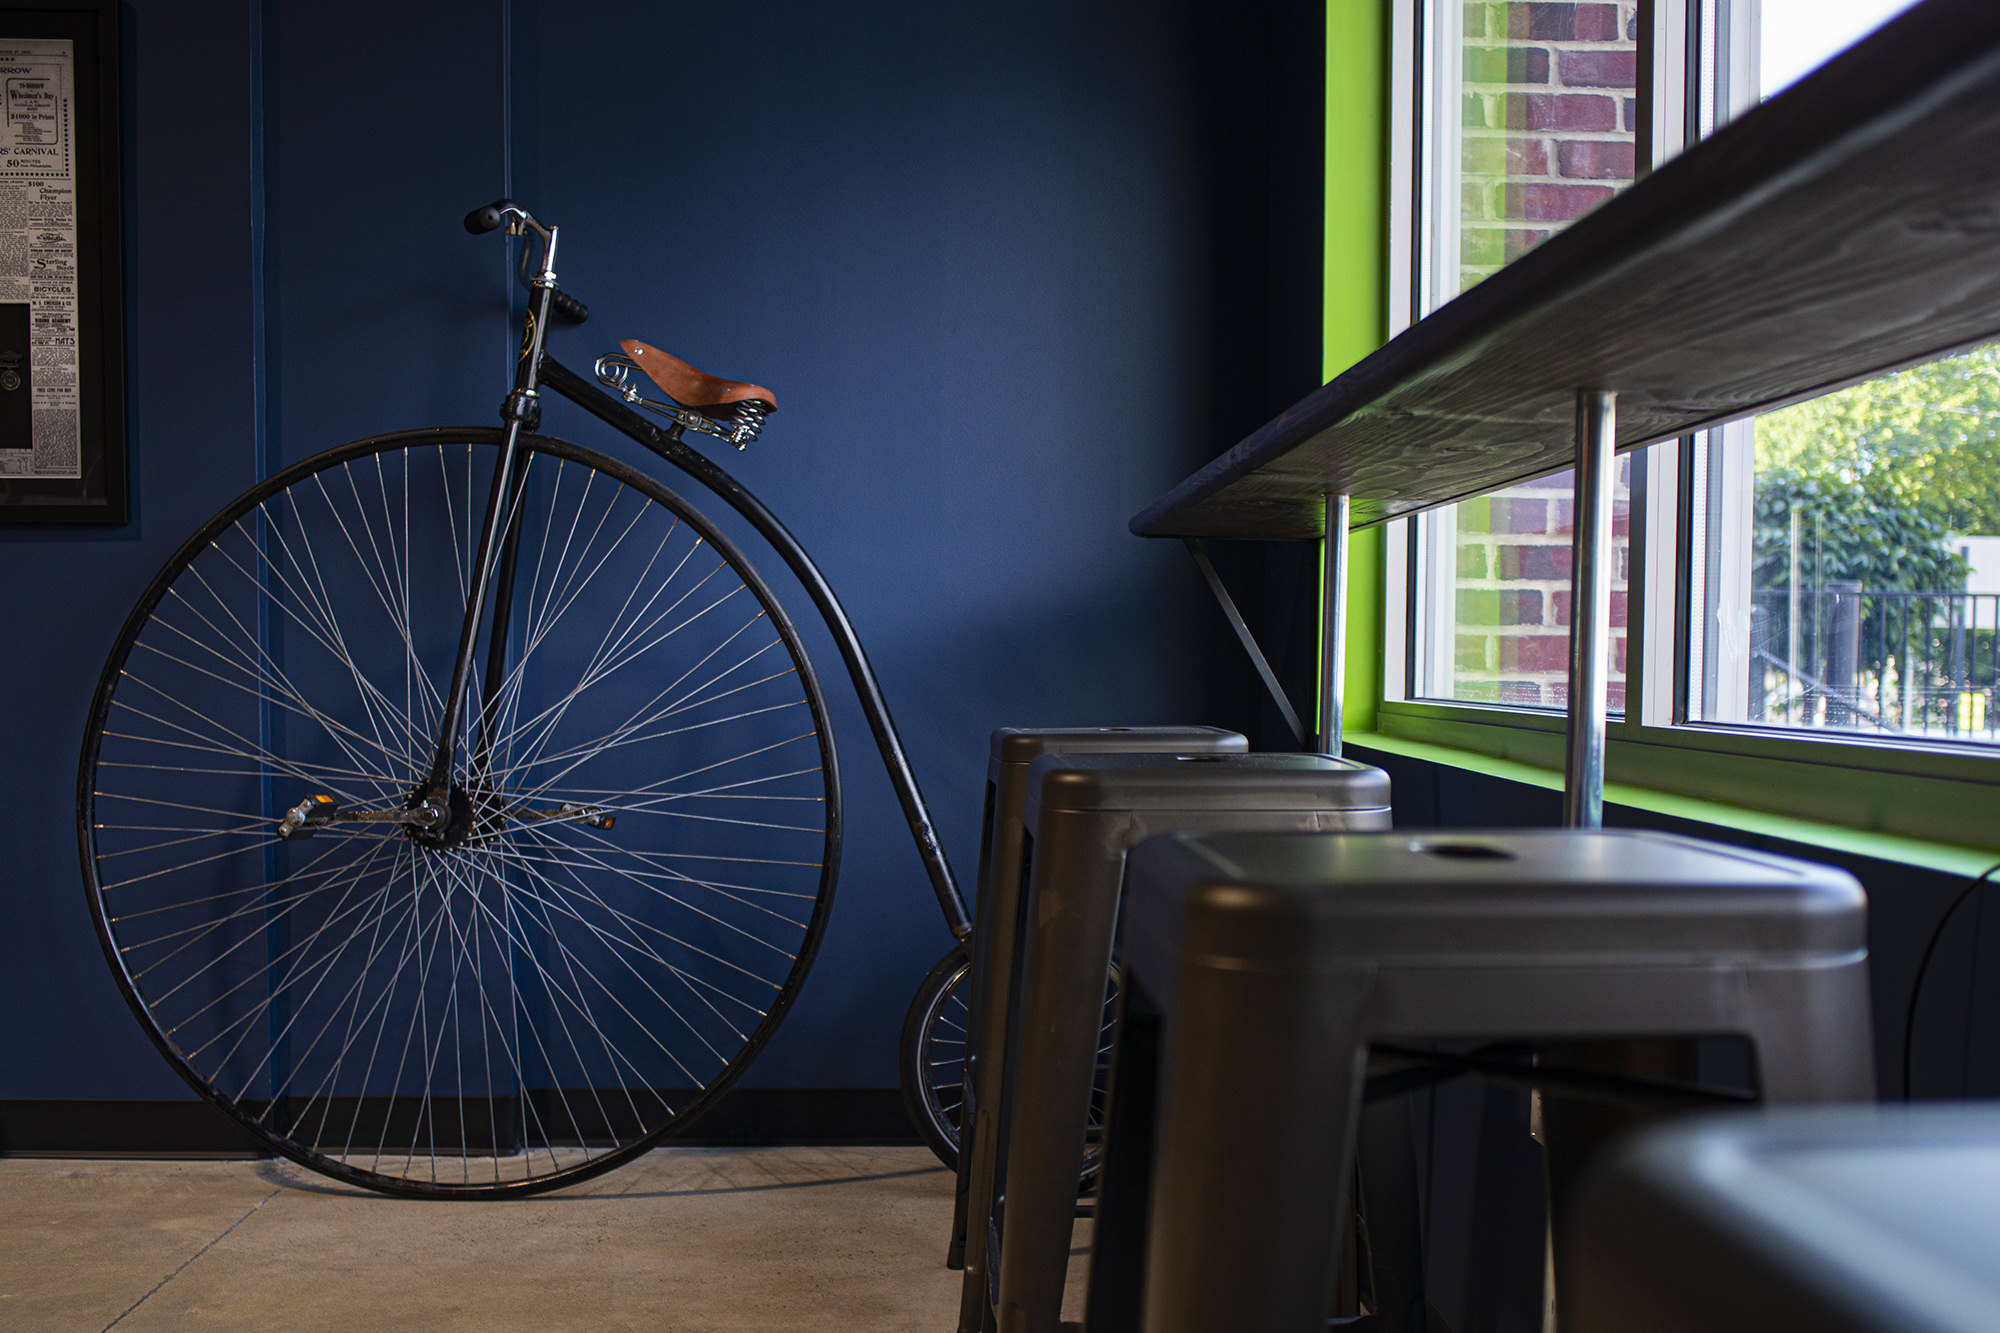 Locally owned bicycle shop expands to Newtown and Doylestown